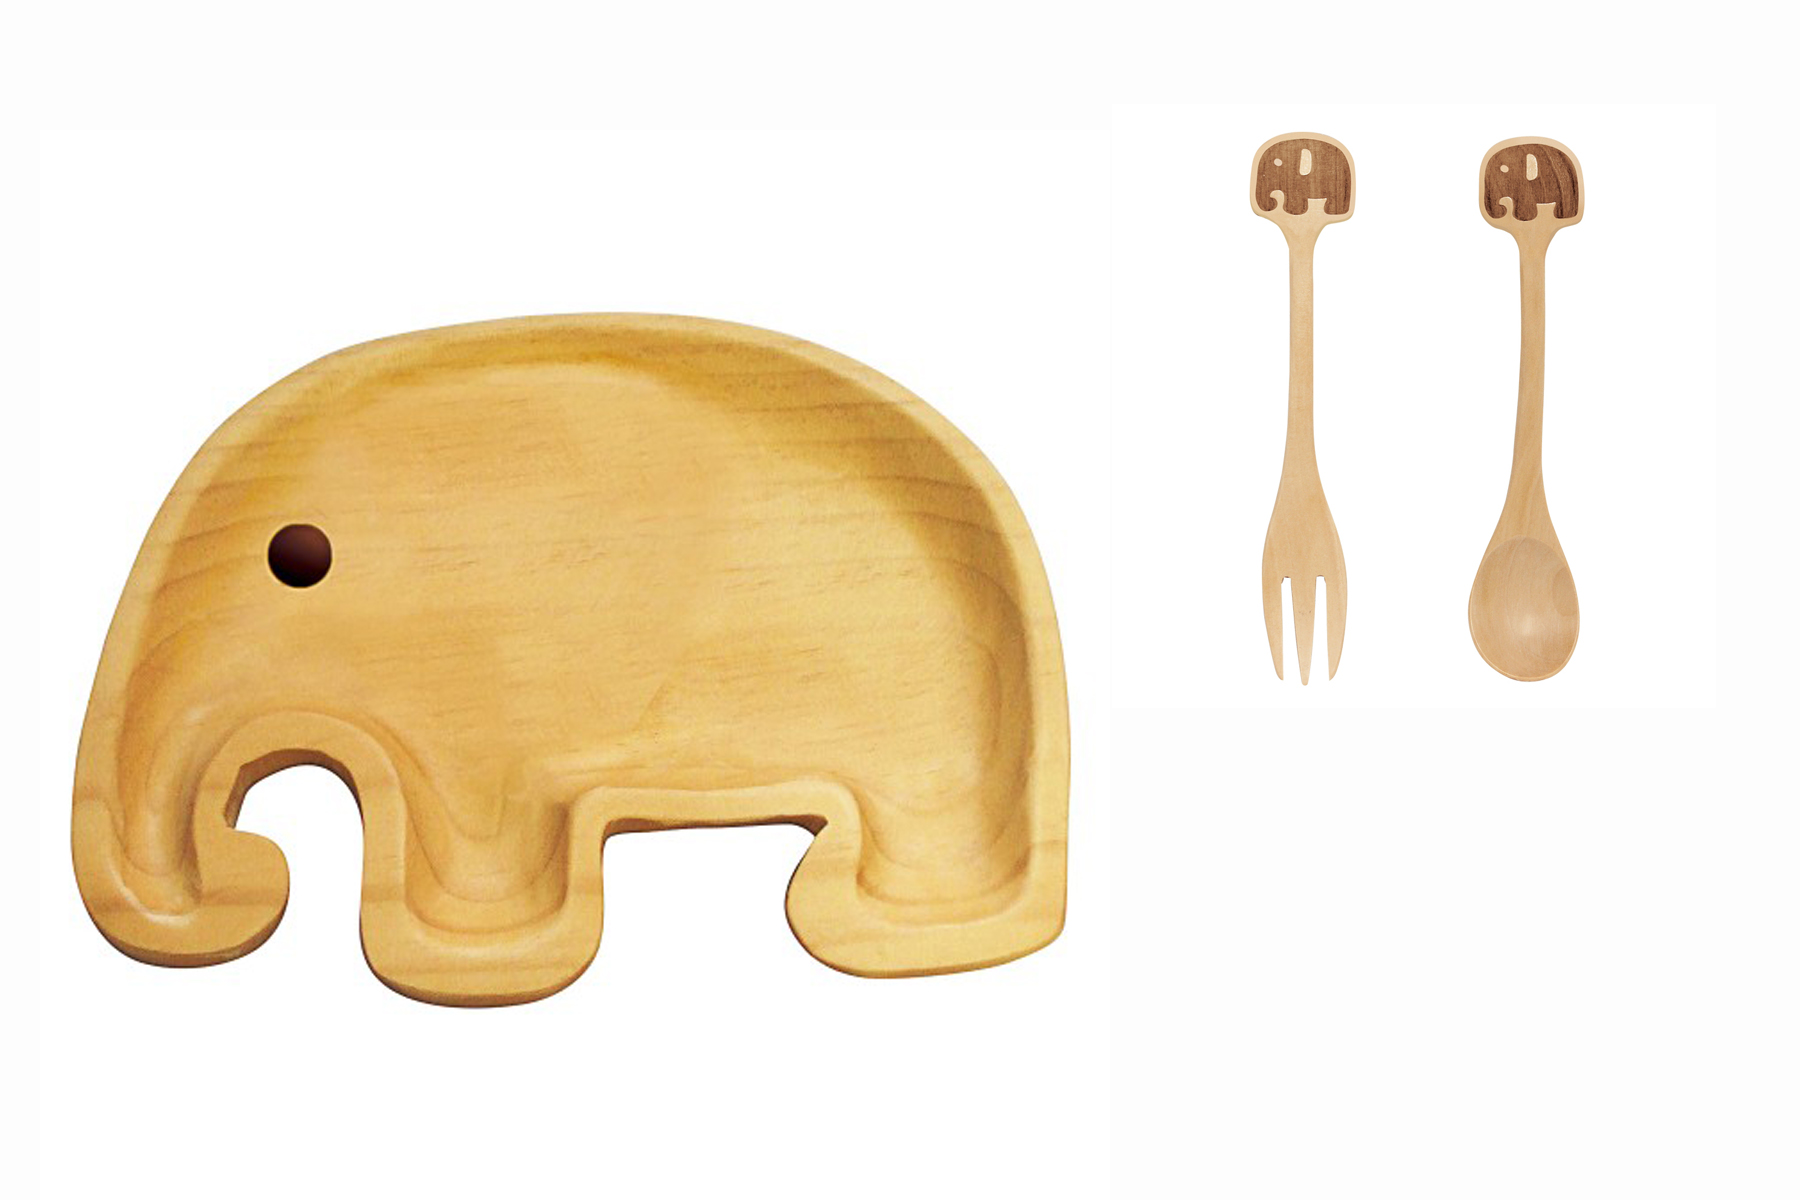 Petits Et Maman Kids' Wood Plate Fork and Spoon, Elephant by Ganz